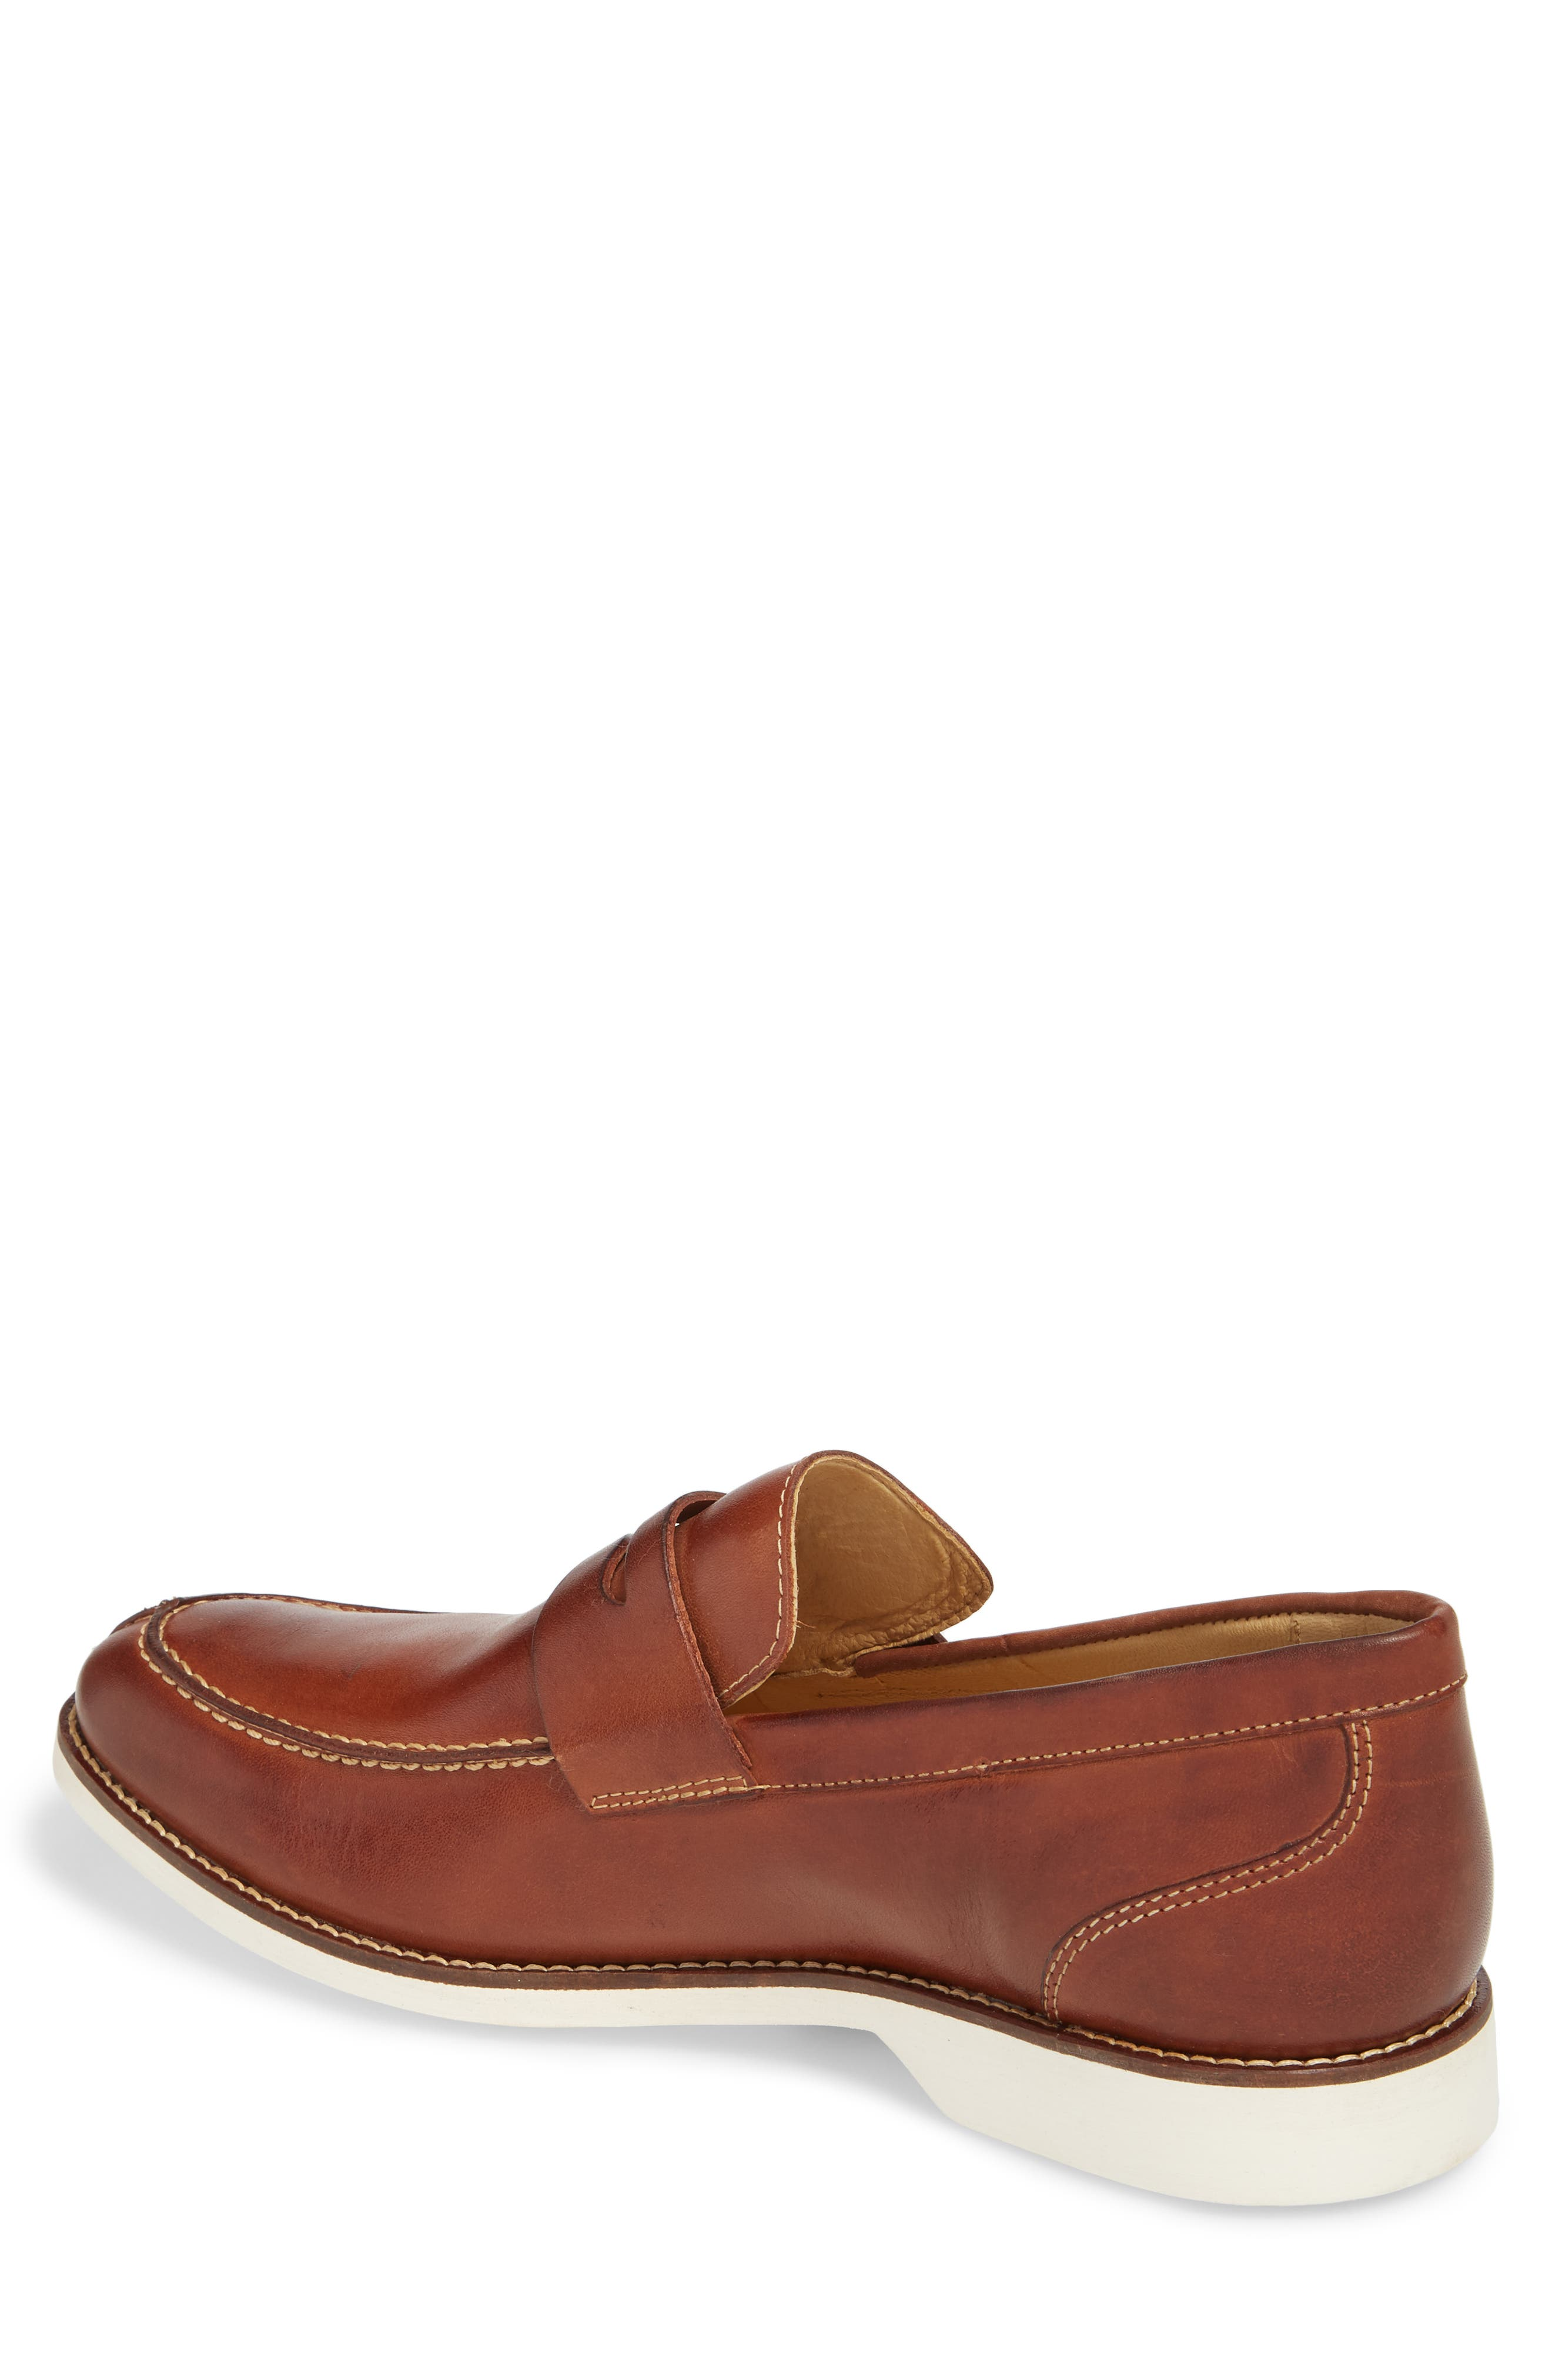 Senador Penny Loafer,                             Alternate thumbnail 2, color,                             Touch Havana Leather